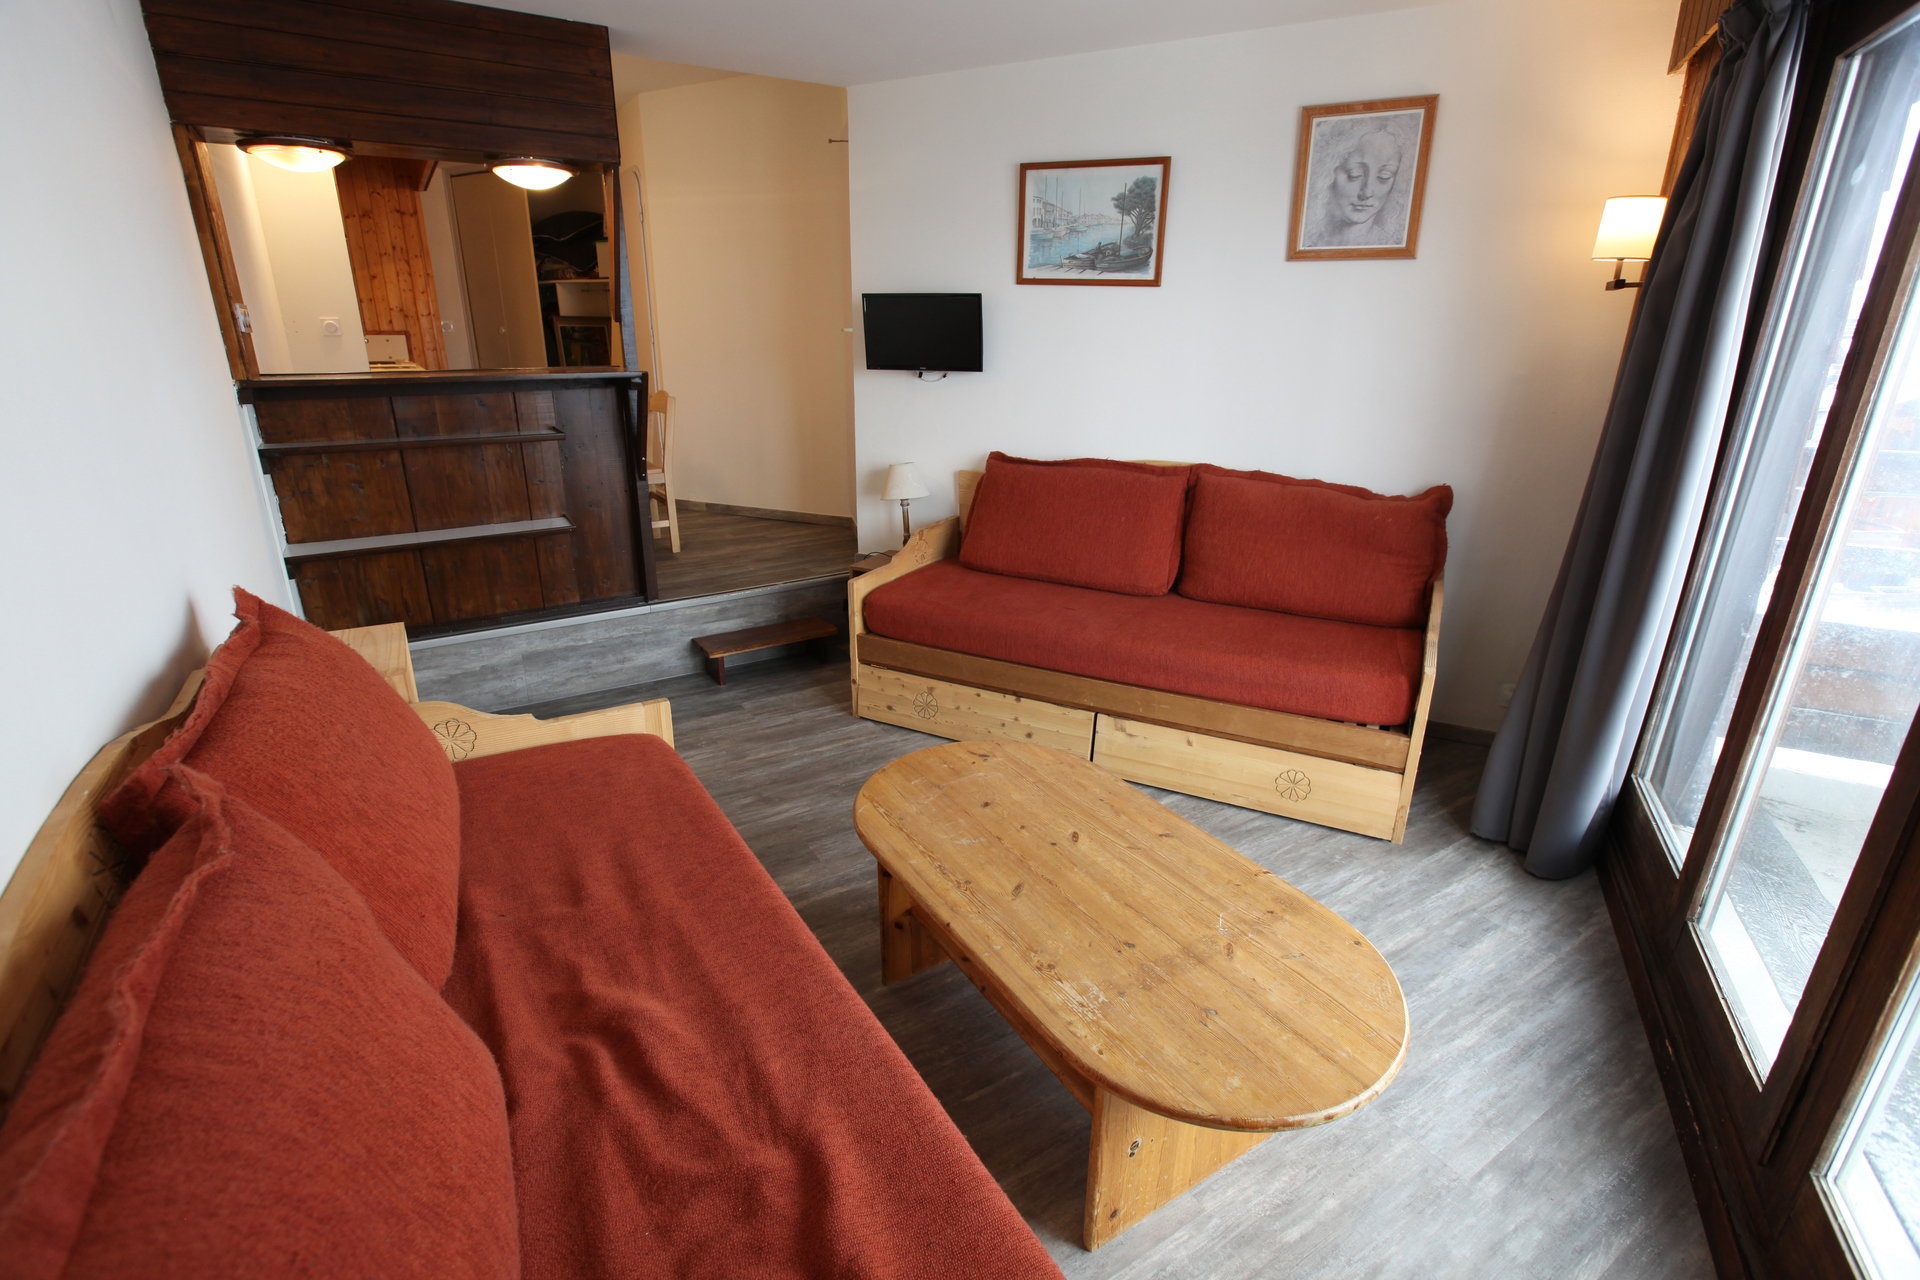 Rent a 2-rooms-(1-bedroom) at Avoriaz